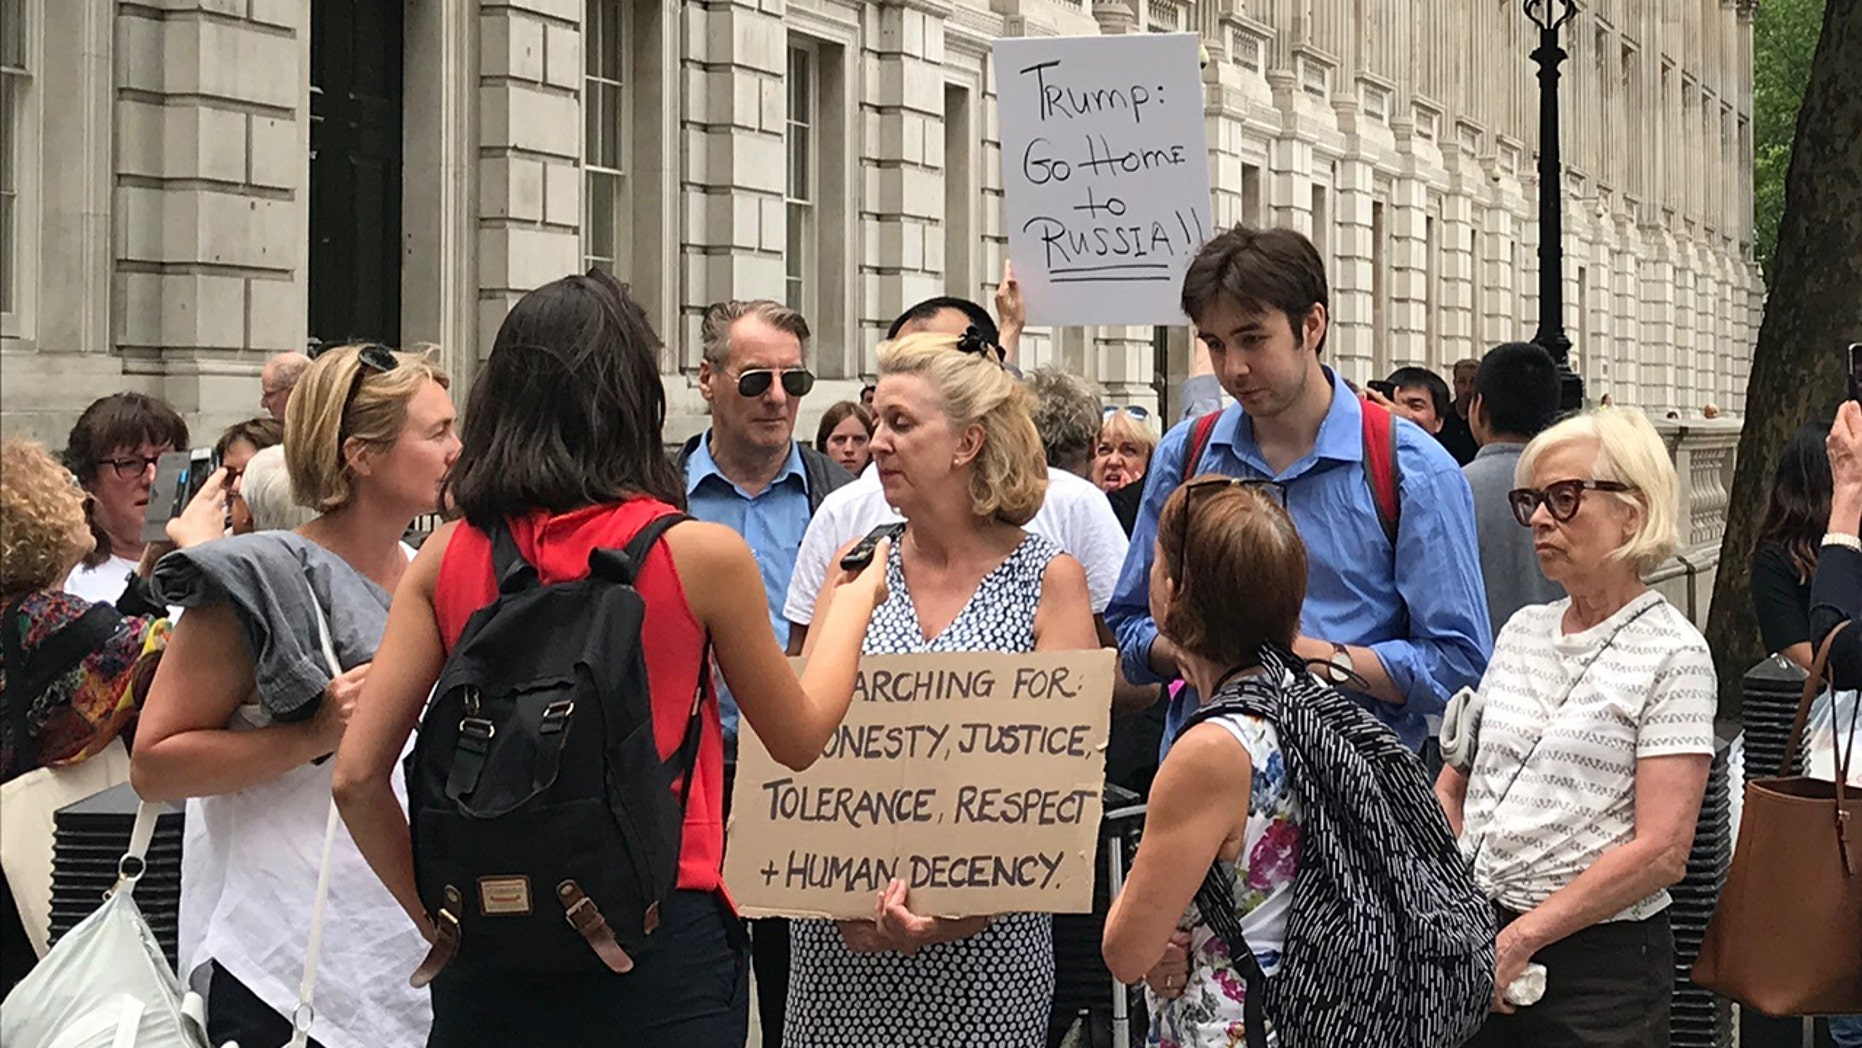 Protesters gather outside 10 Downing Street